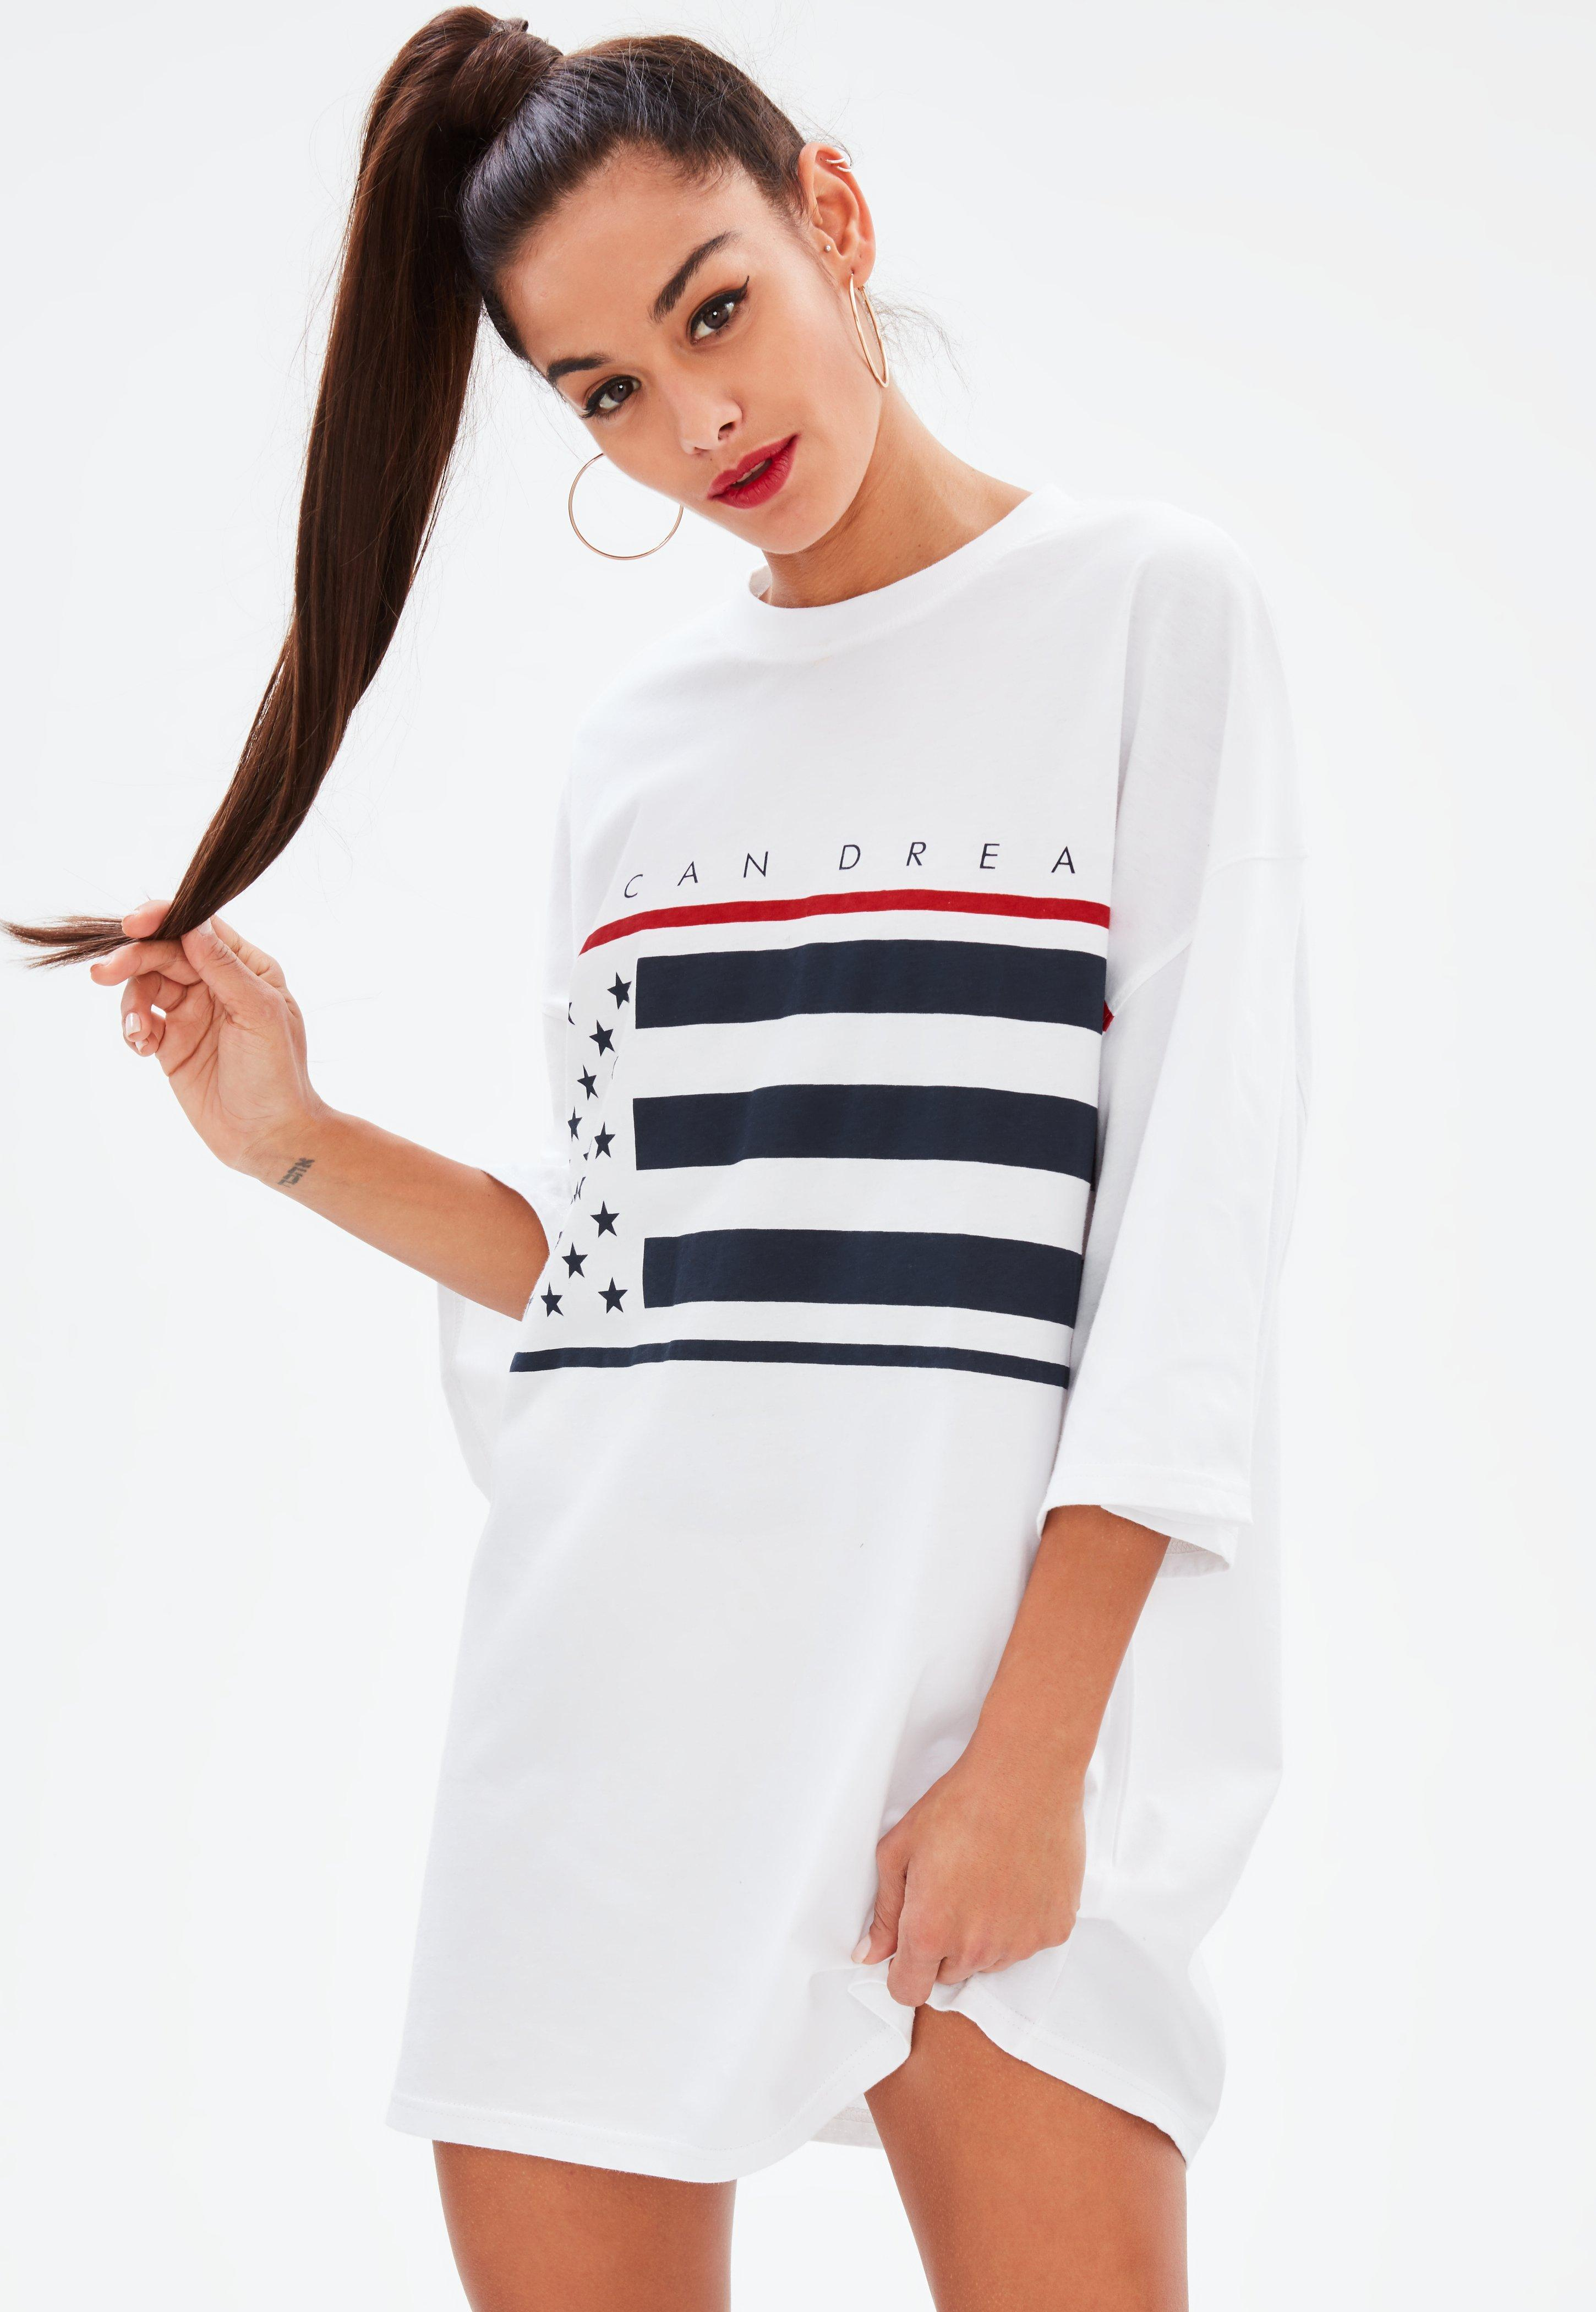 Not Today White Embroidered Oversized T Shirt Dress Pretty Little Thing With Mastercard Online Discount Explore Choice Online Pay With Paypal Sast For Sale LZLoI